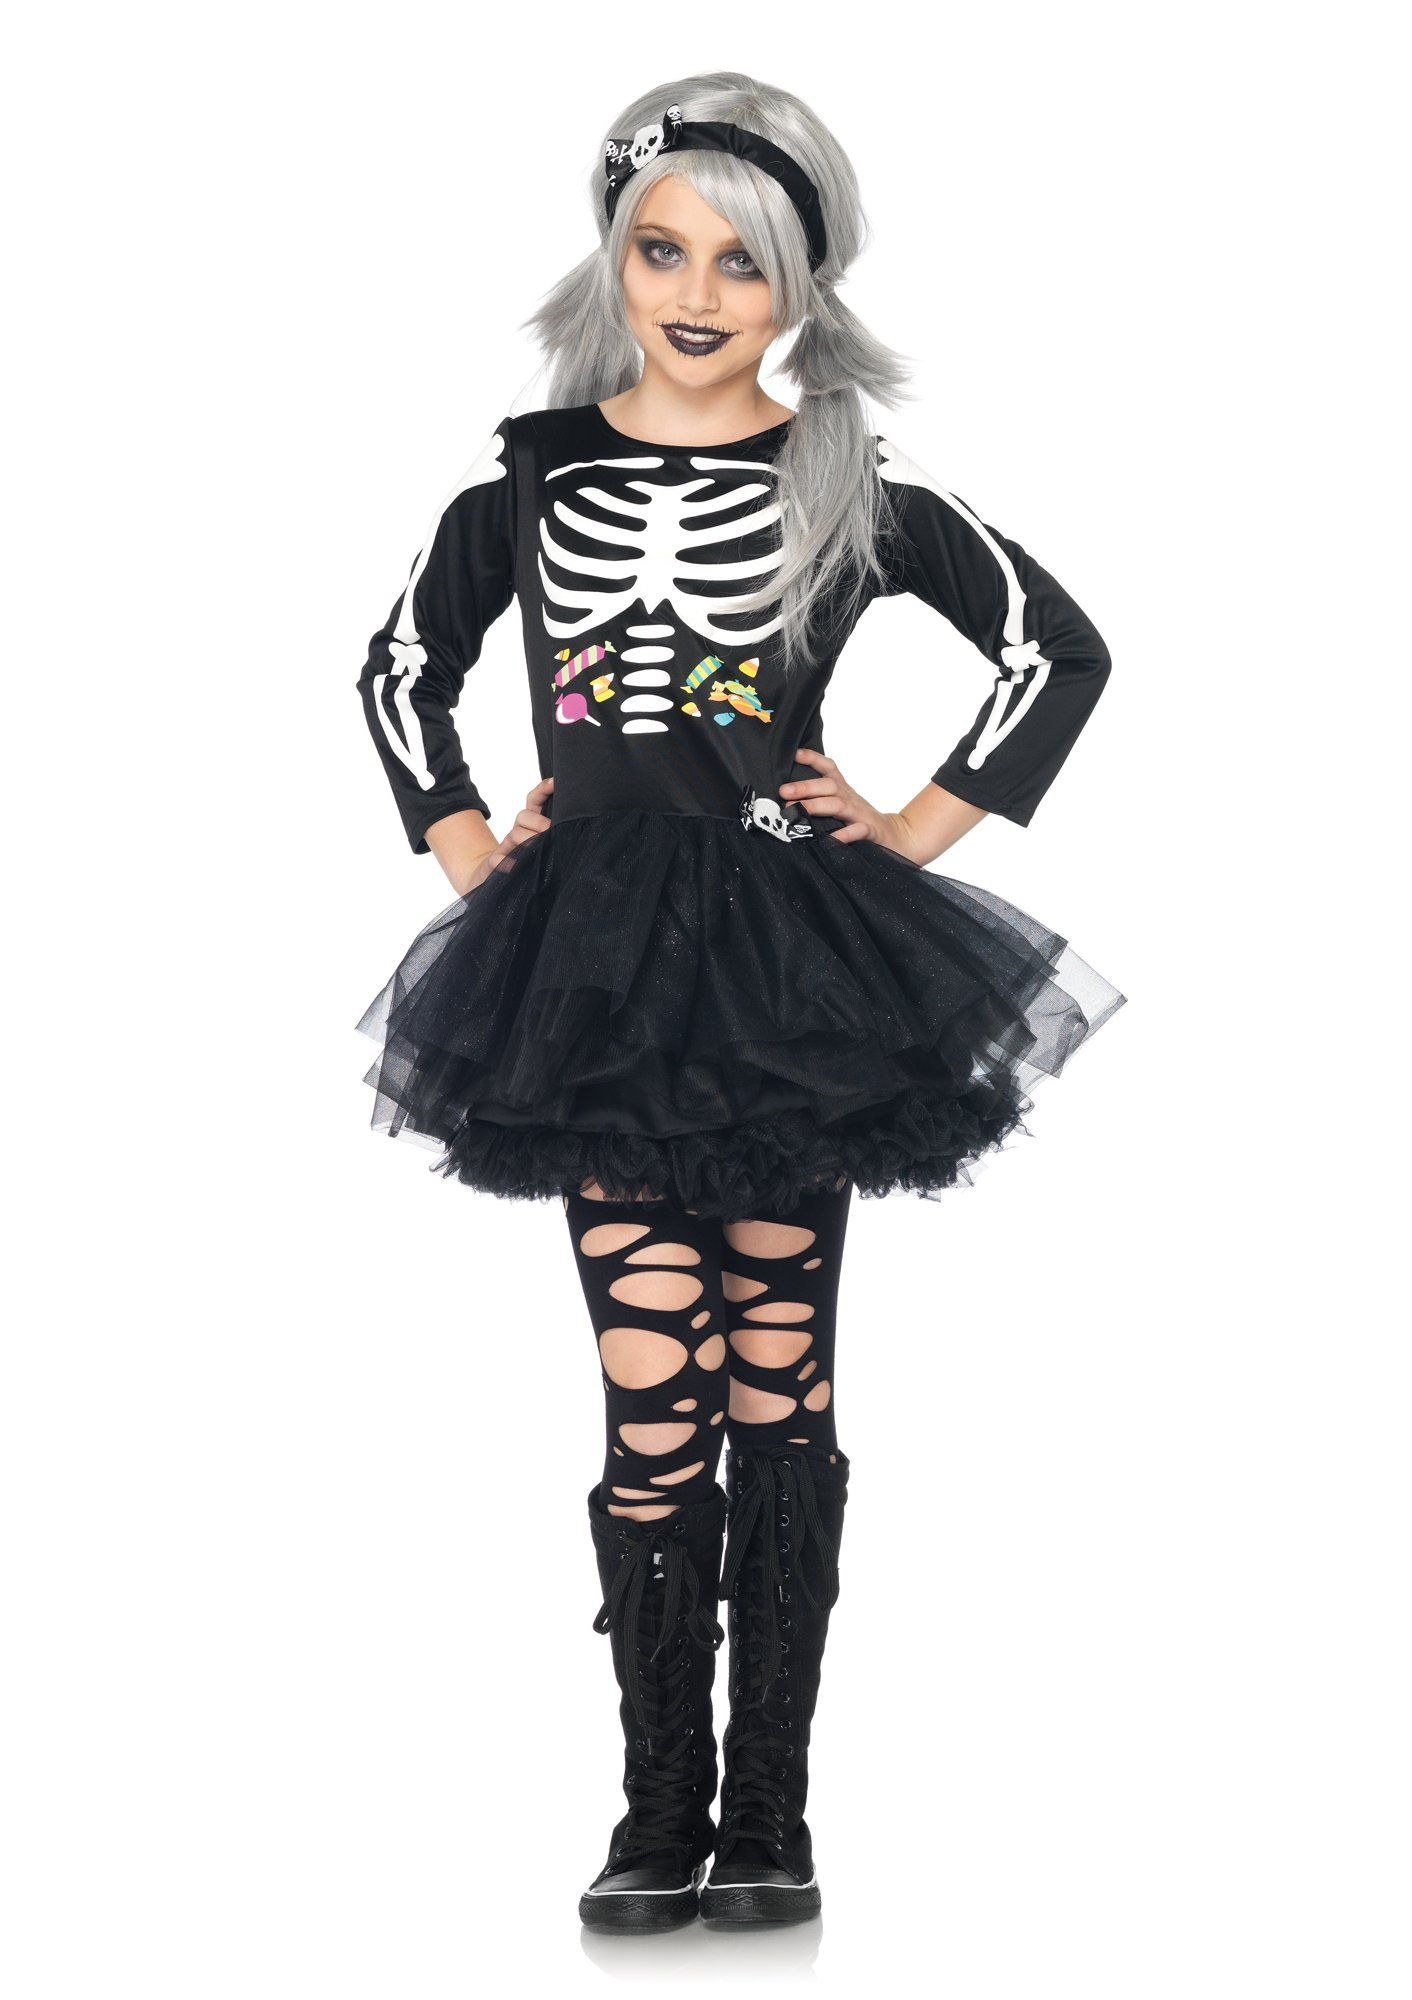 leg avenue costumes 2pcscary skeleton petticoat dress with bone detail and headband black scary kids halloween